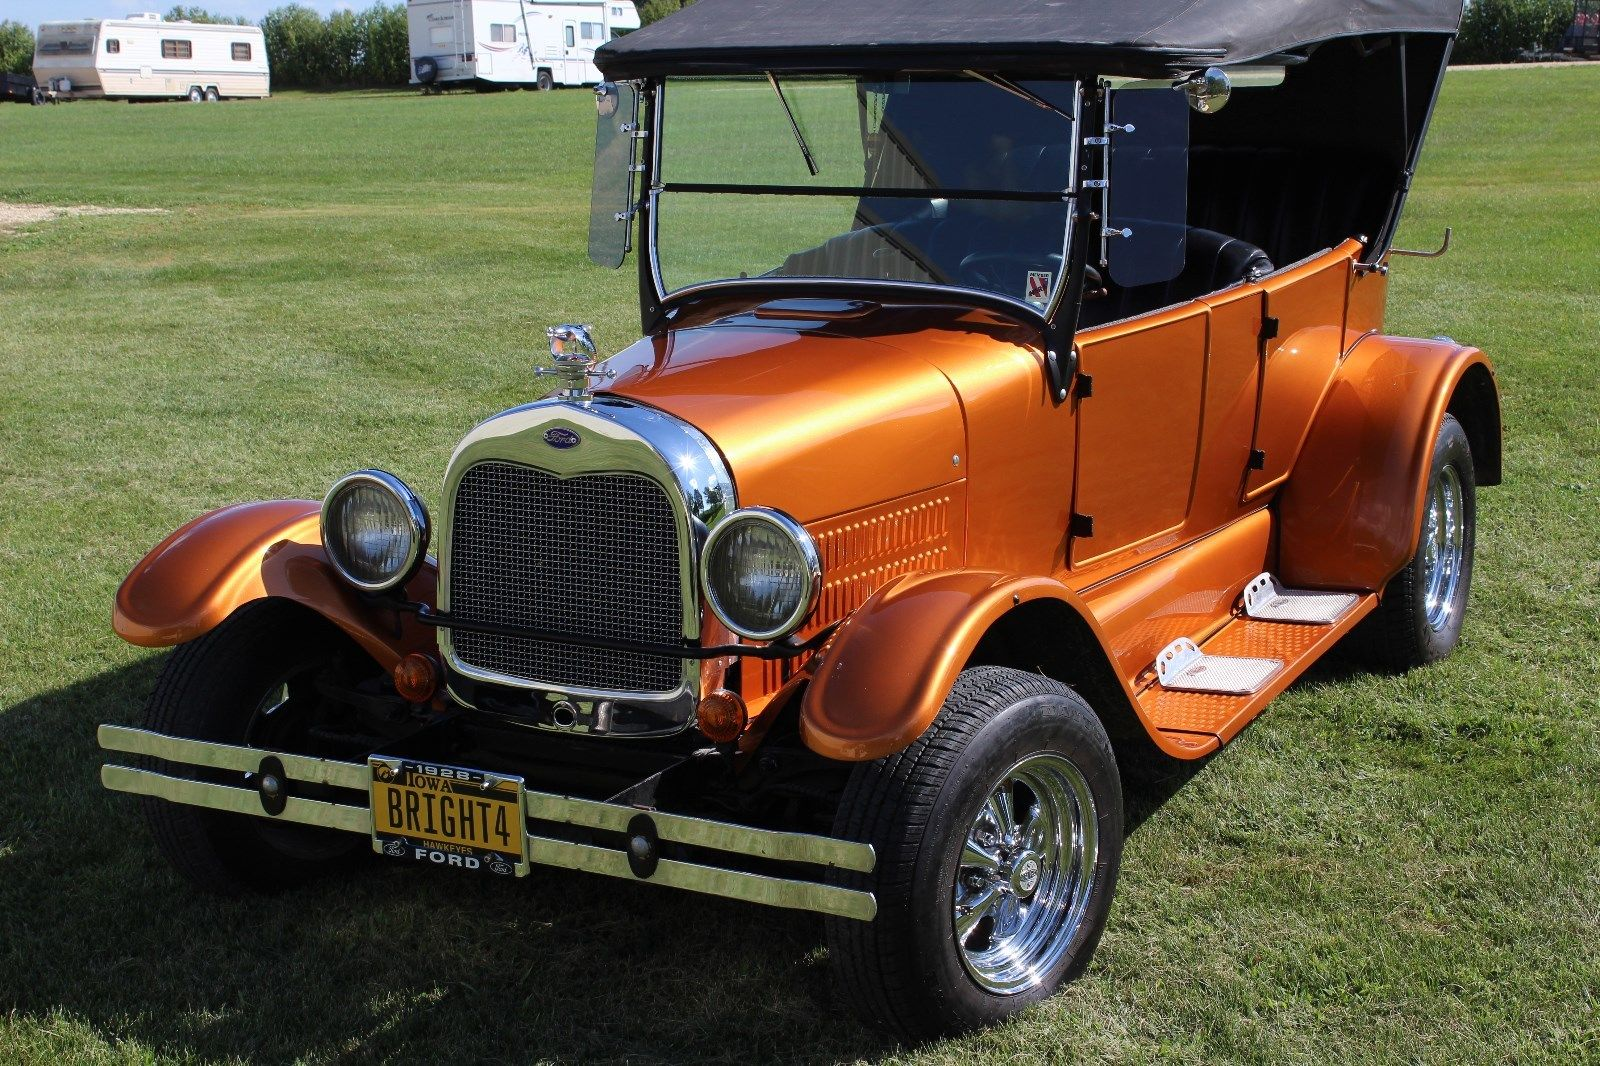 mustang based 1928 ford model a hot rod replica for sale. Black Bedroom Furniture Sets. Home Design Ideas